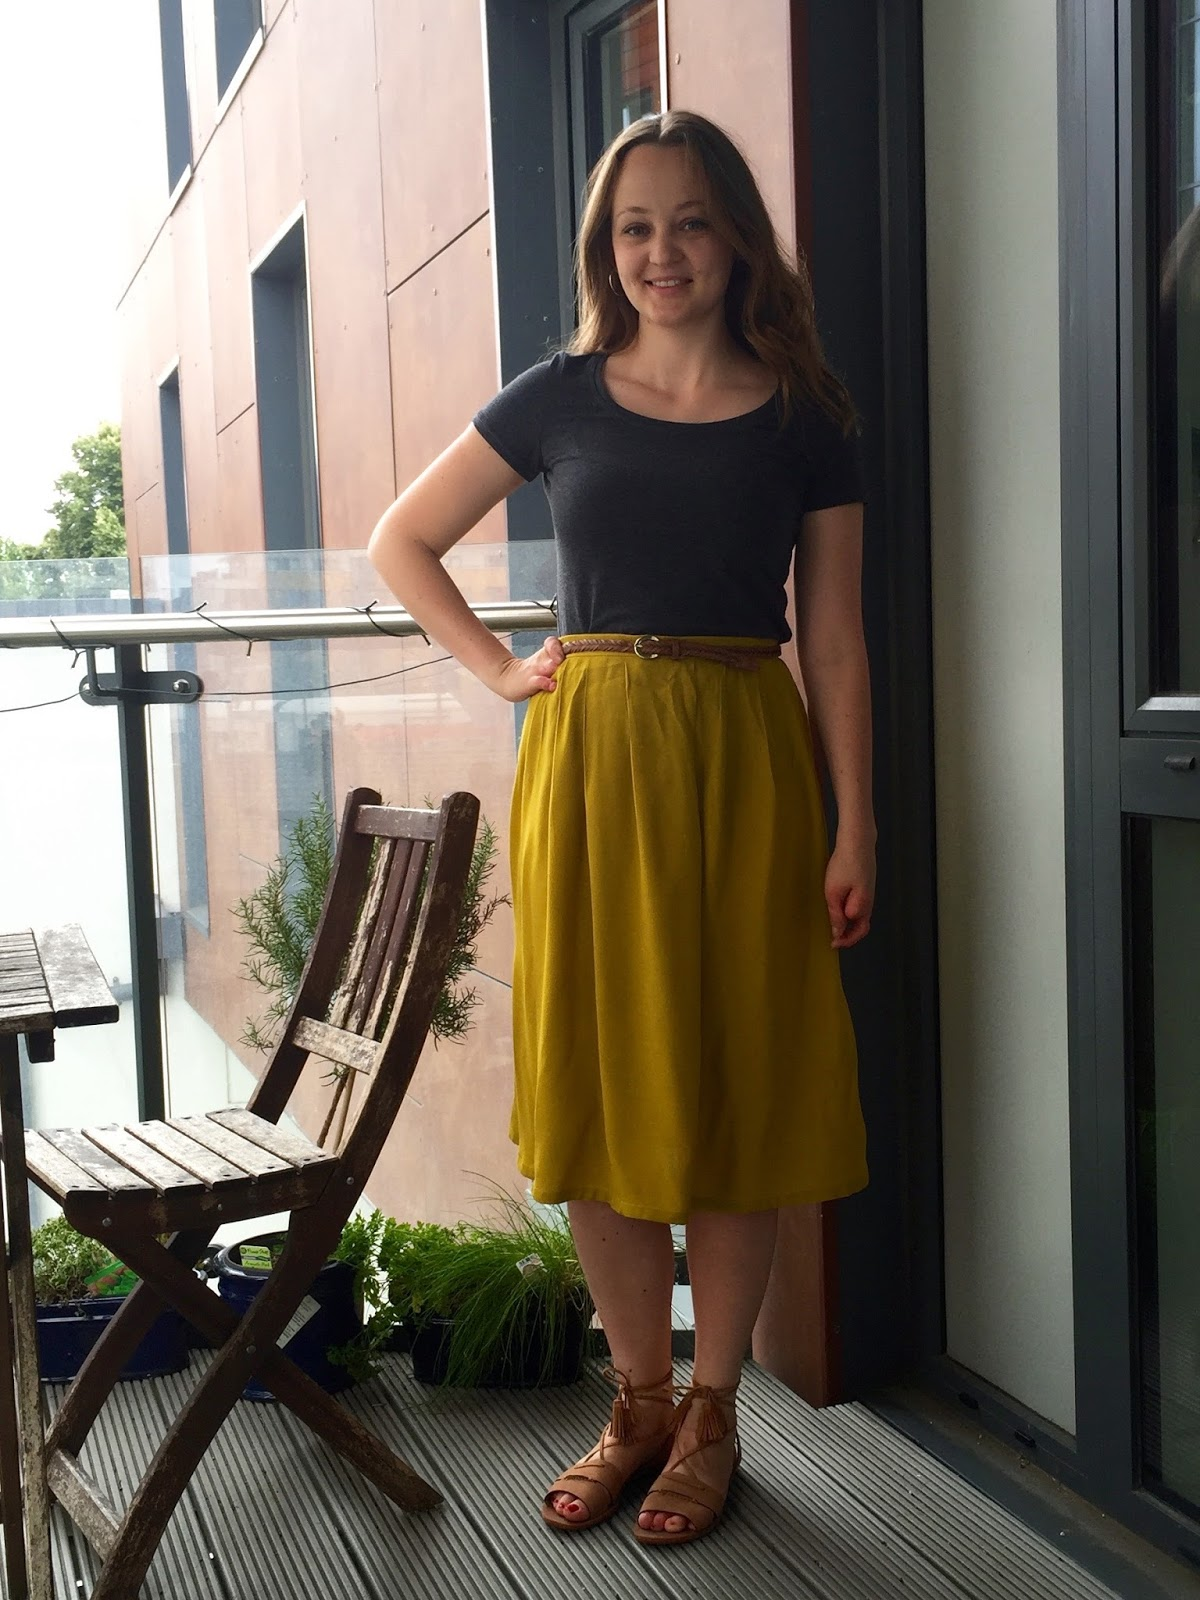 a0e11960503af5 Mustard Rayon Midi Skirt & Charcoal Renfrew Tee | Diary of a Chain ...